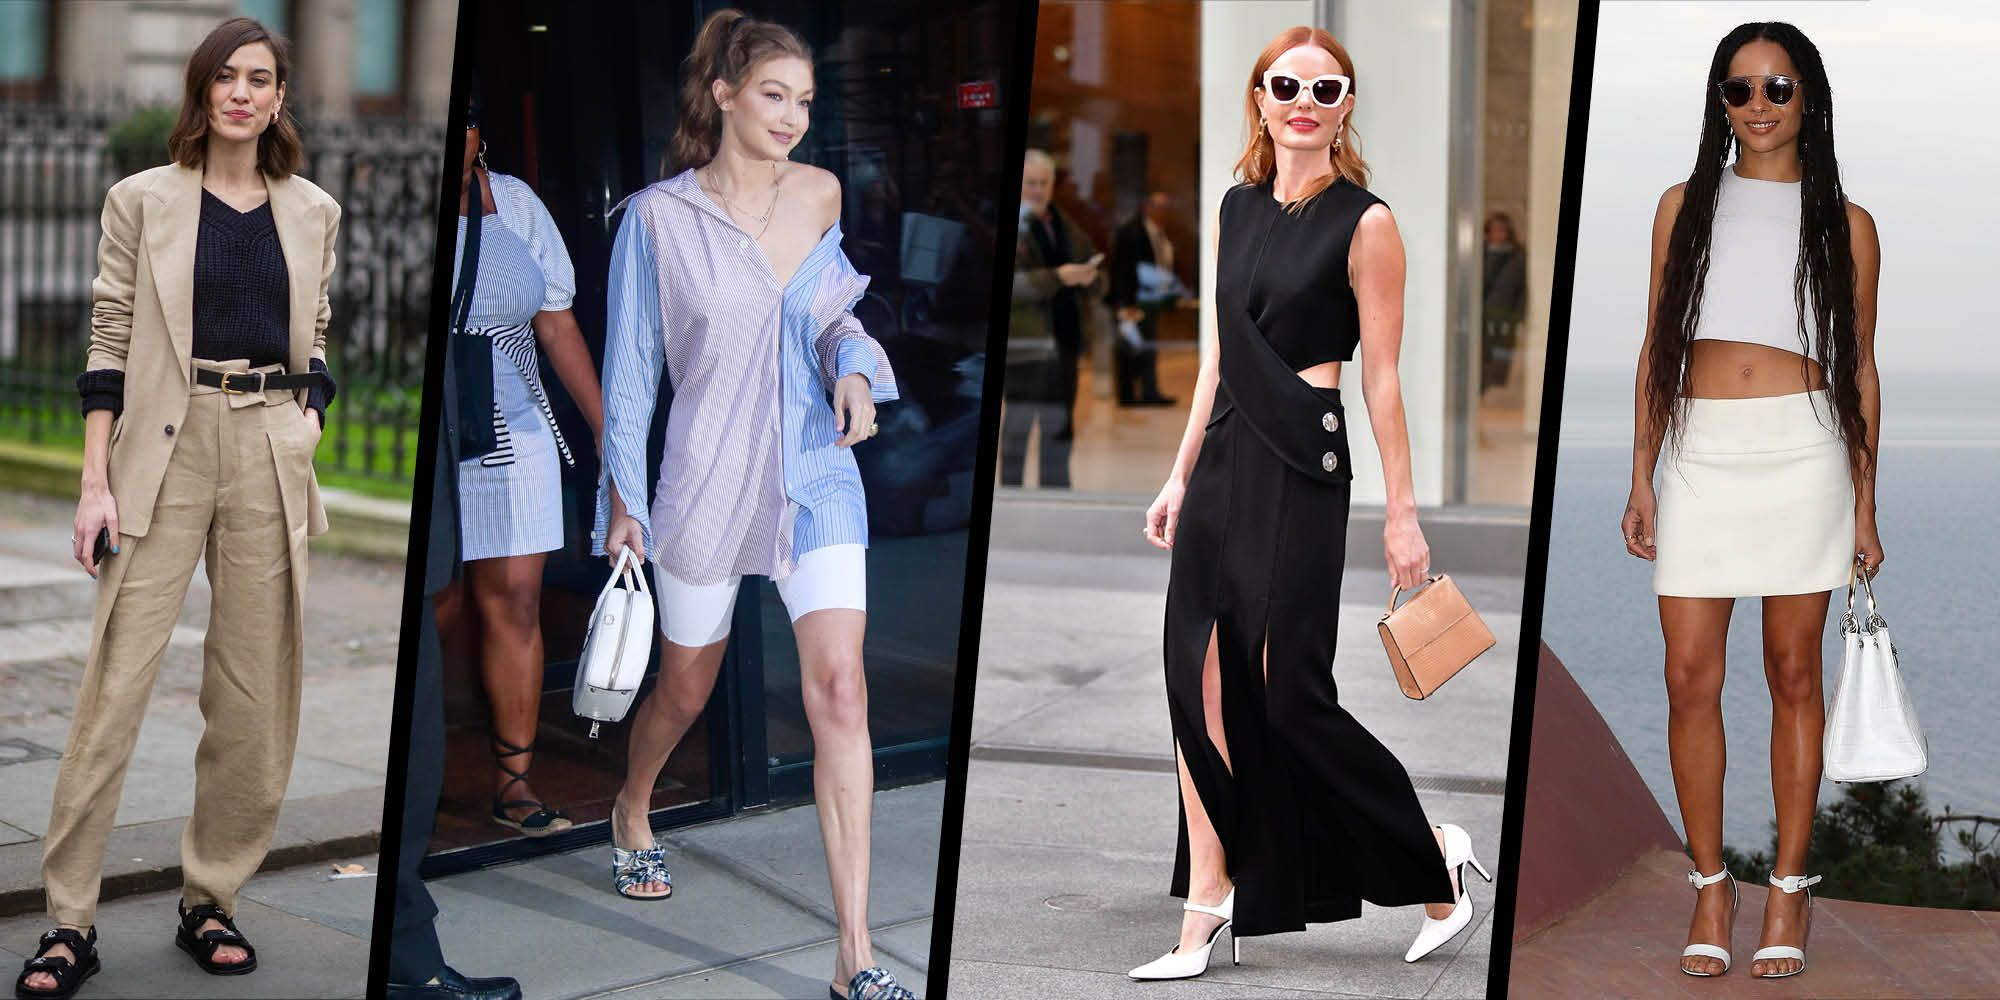 Gallery | Fashion, Casual outfits, Cool